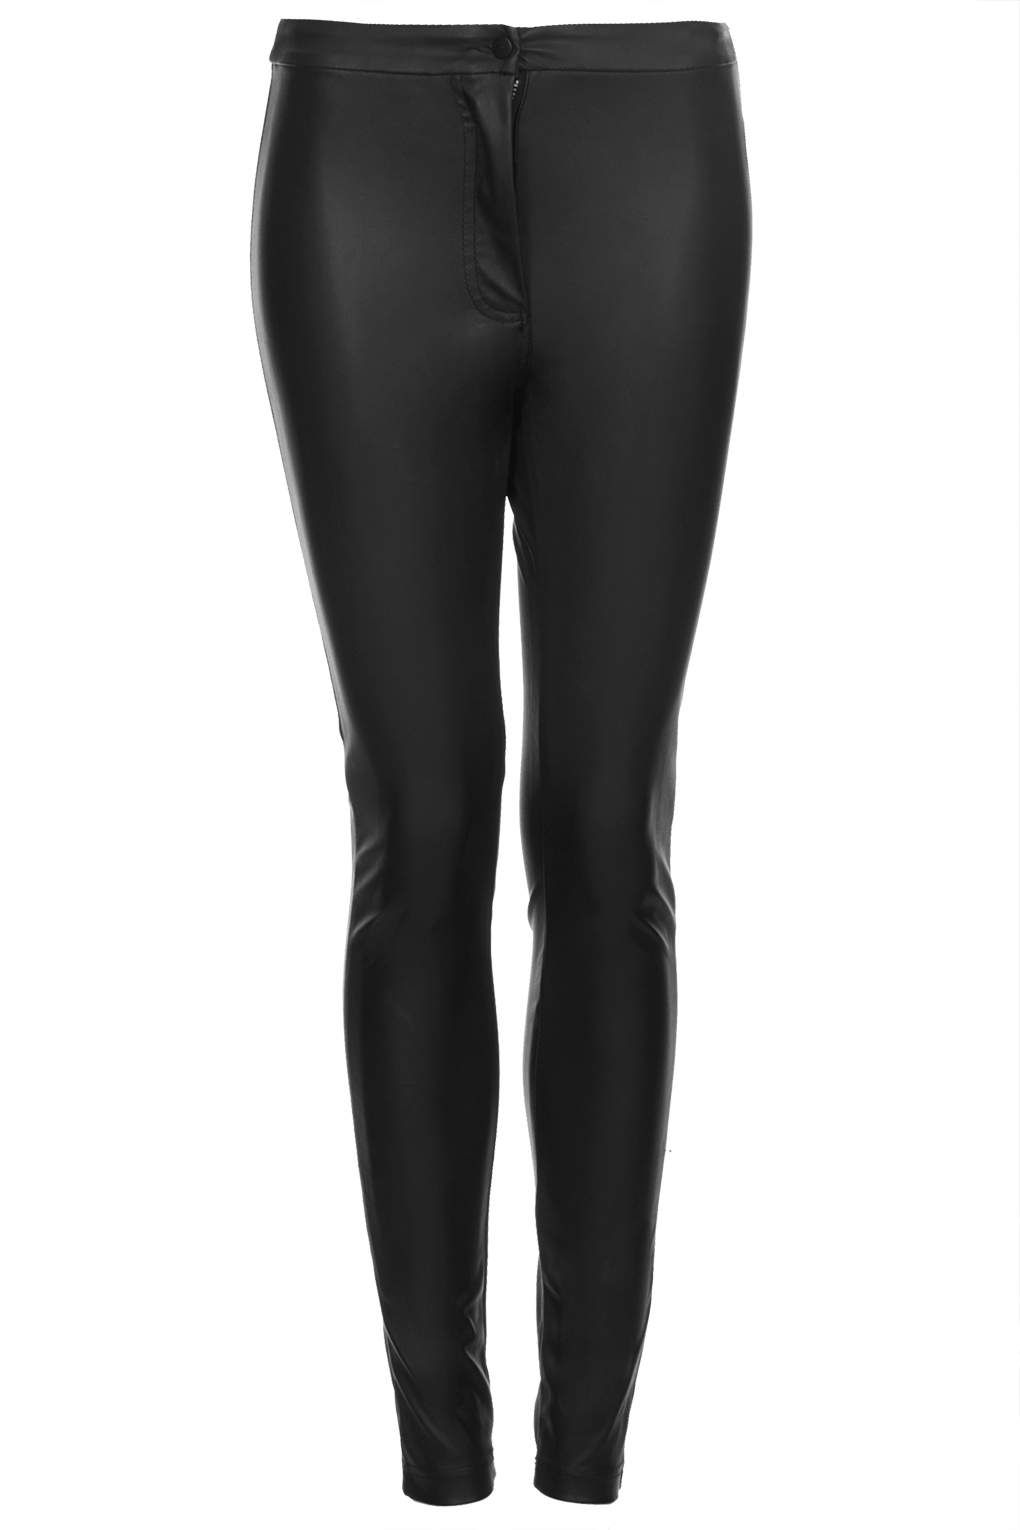 Black Leather Look Skinny Trousers River Island